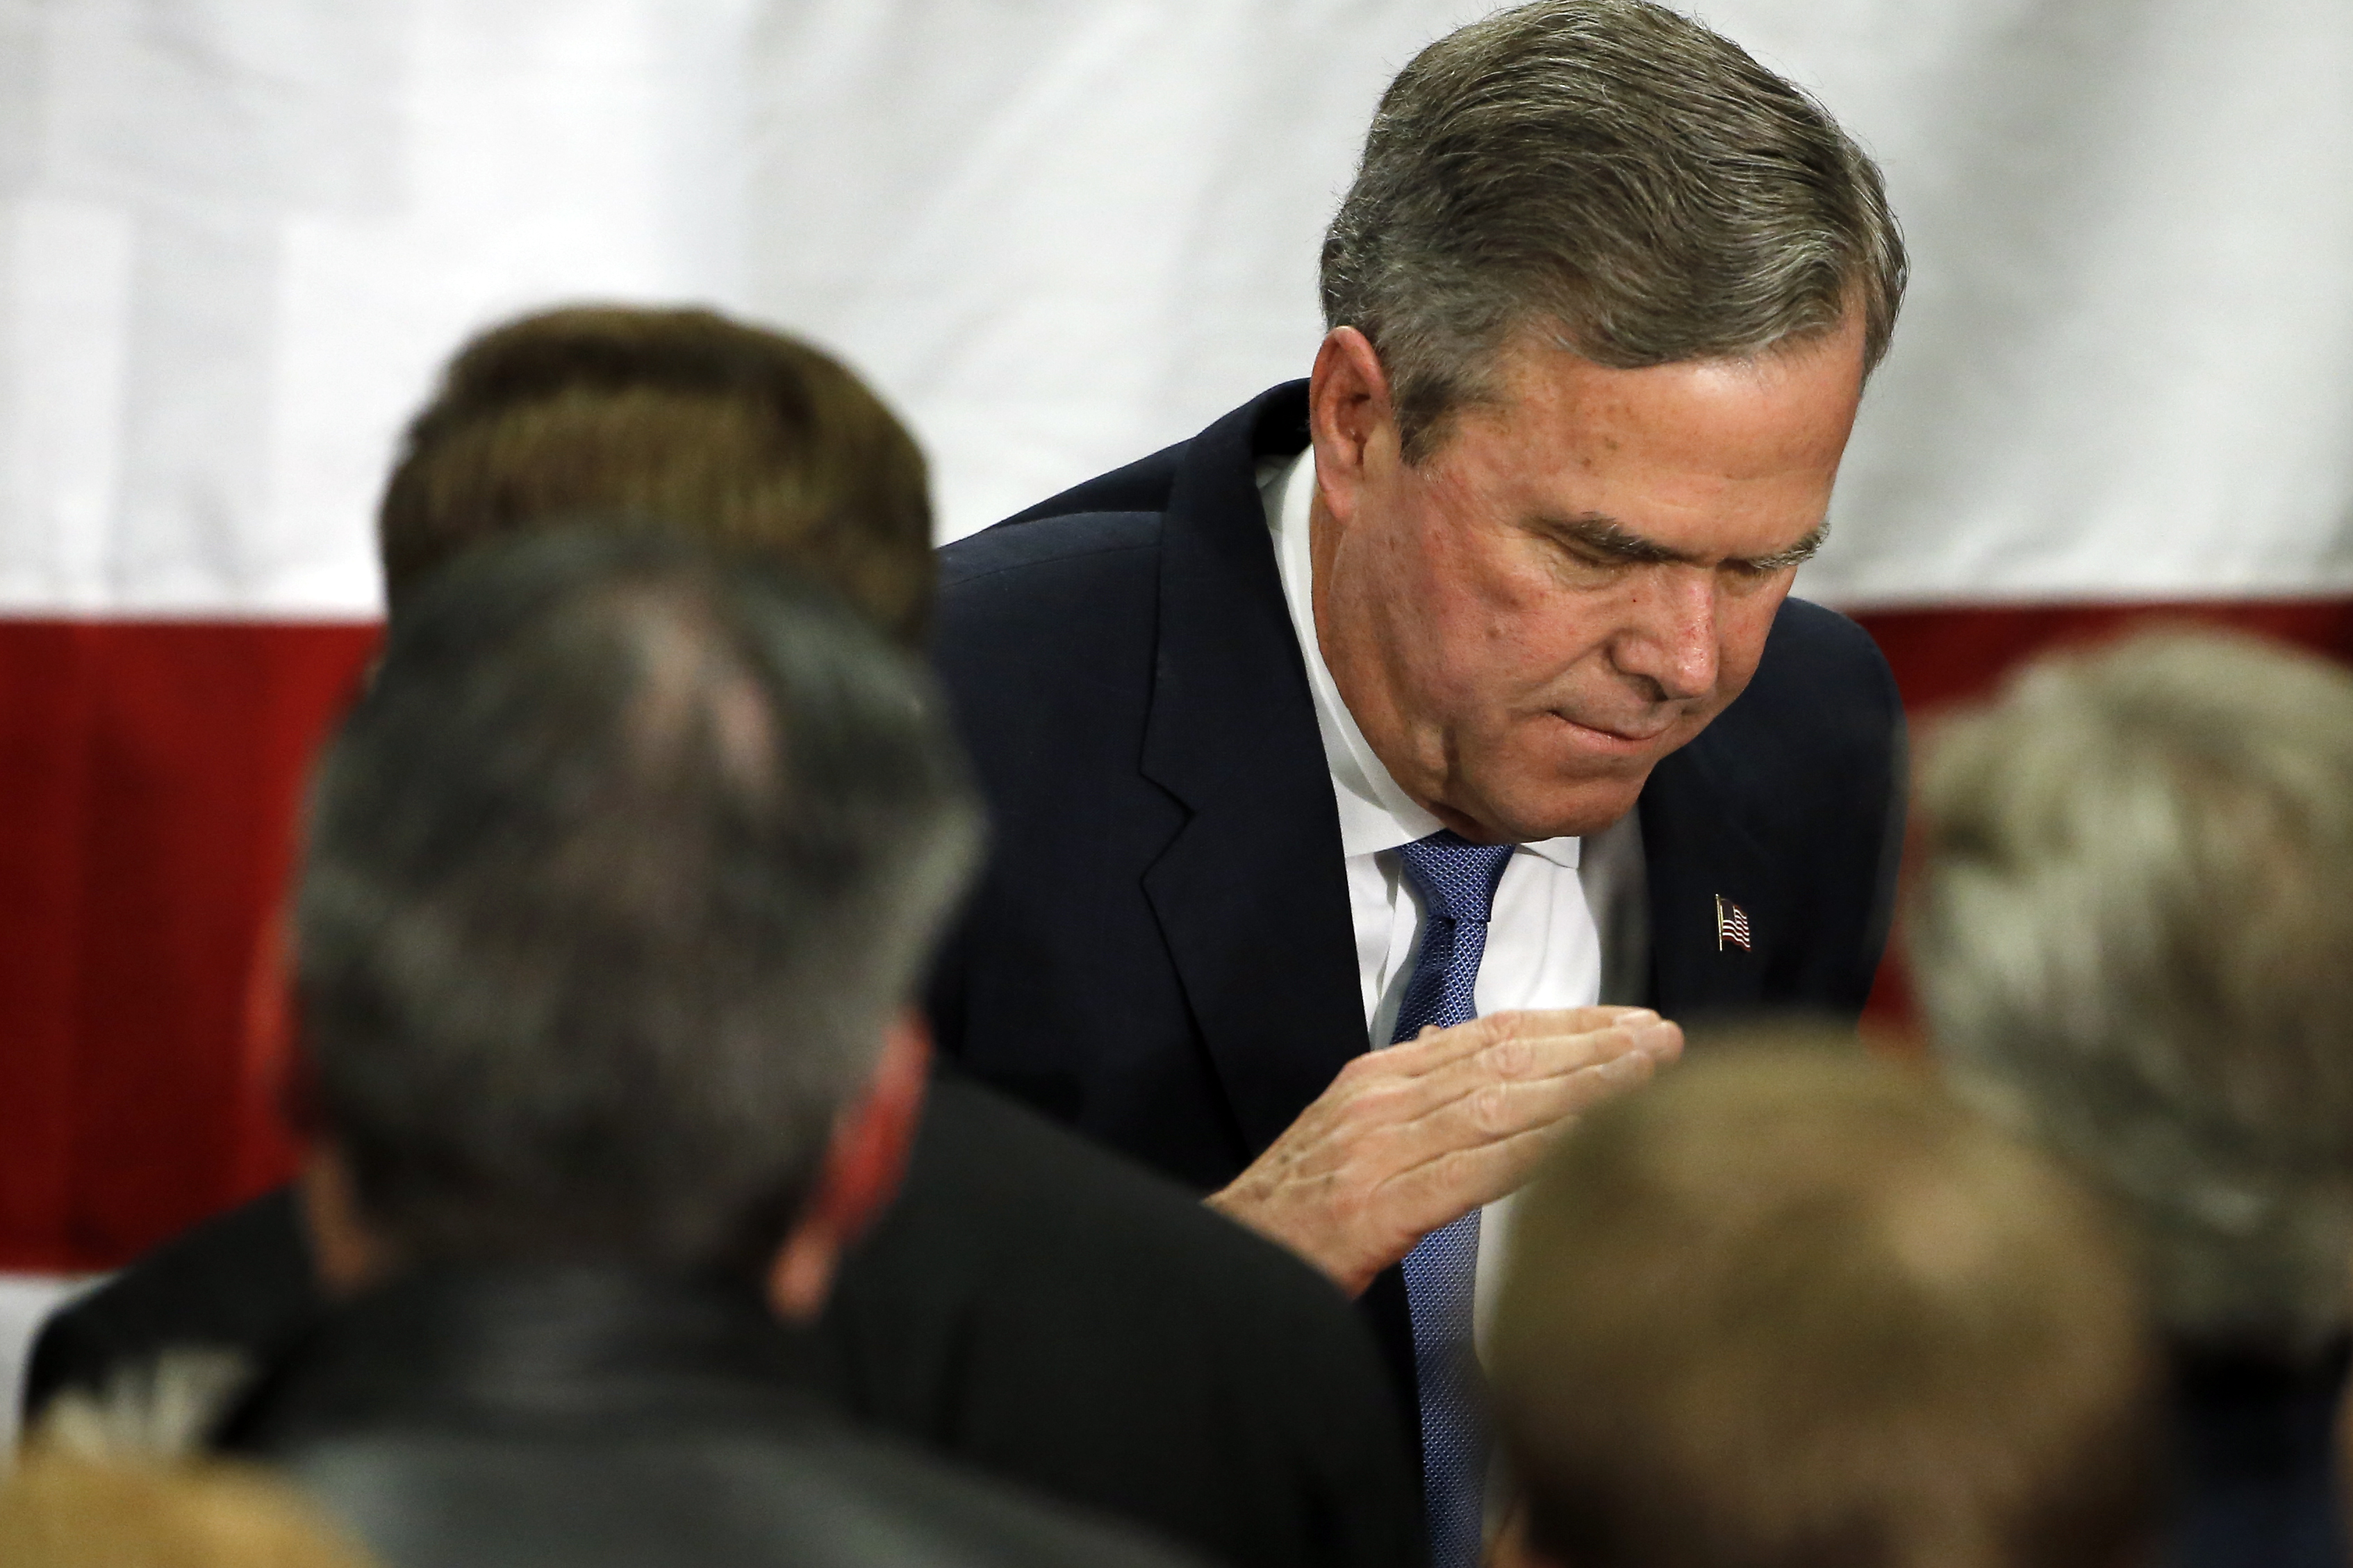 Republican presidential candidate, former Florida Gov. Jeb Bush meets with attendees at his South Carolina Republican presidential primary rally in Columbia, S.C., Saturday, Feb. 20, 2016. (AP Photo/Matt Rourke)